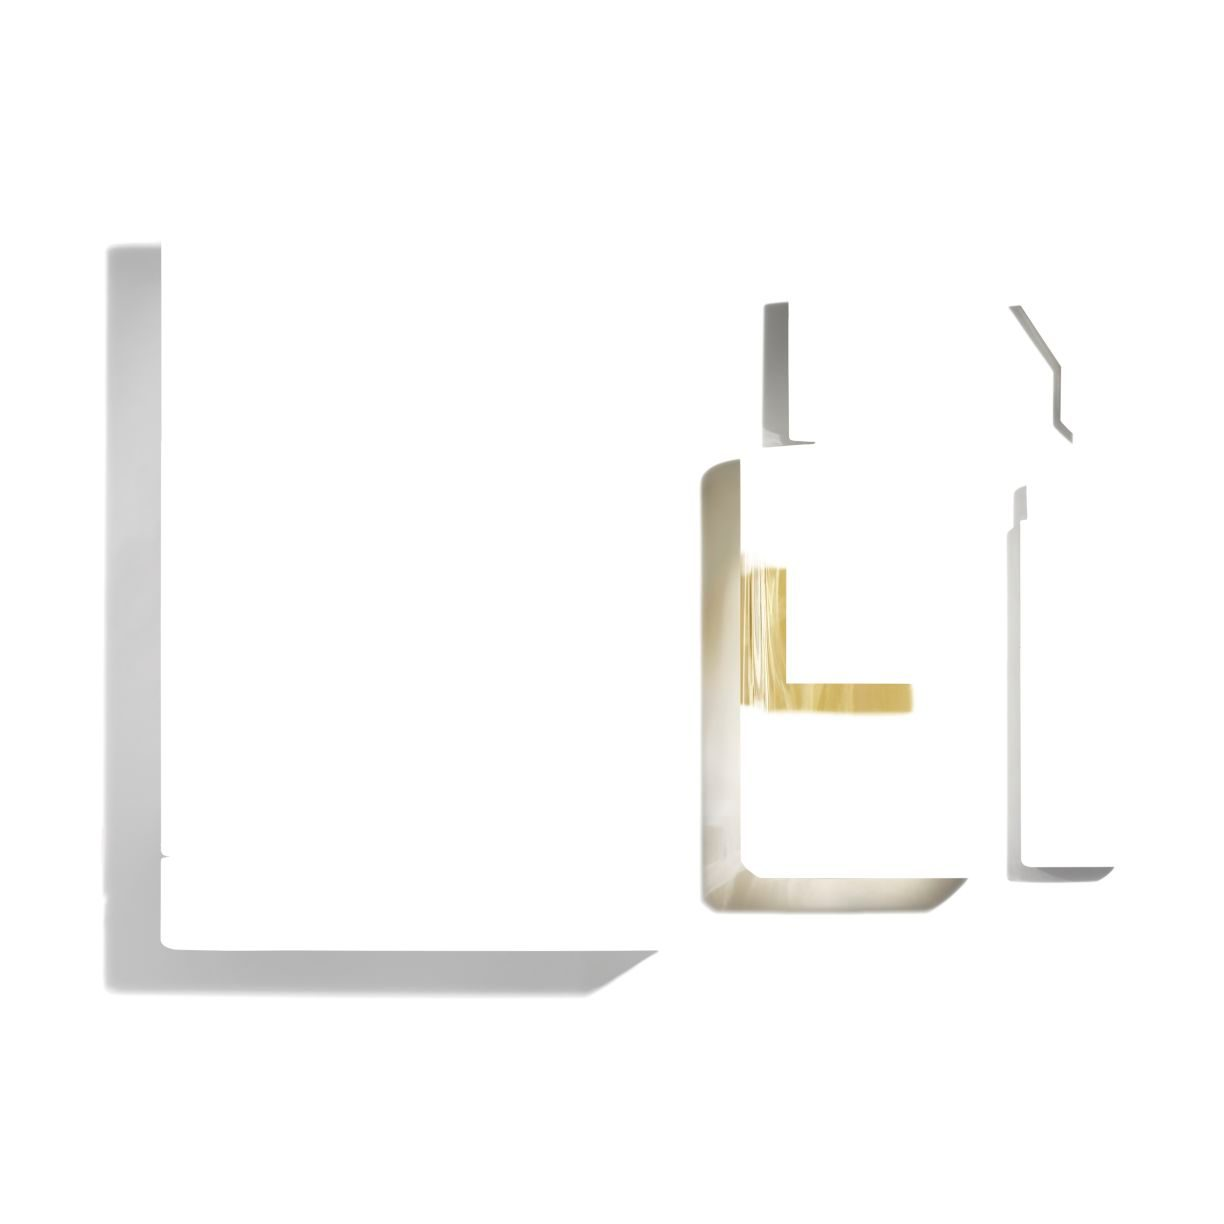 LES EXCLUSIFS DE CHANEL BEIGE - COFFRET: 400 ML BOTTLE AND REFILLABLE TWIST AND SPRAY